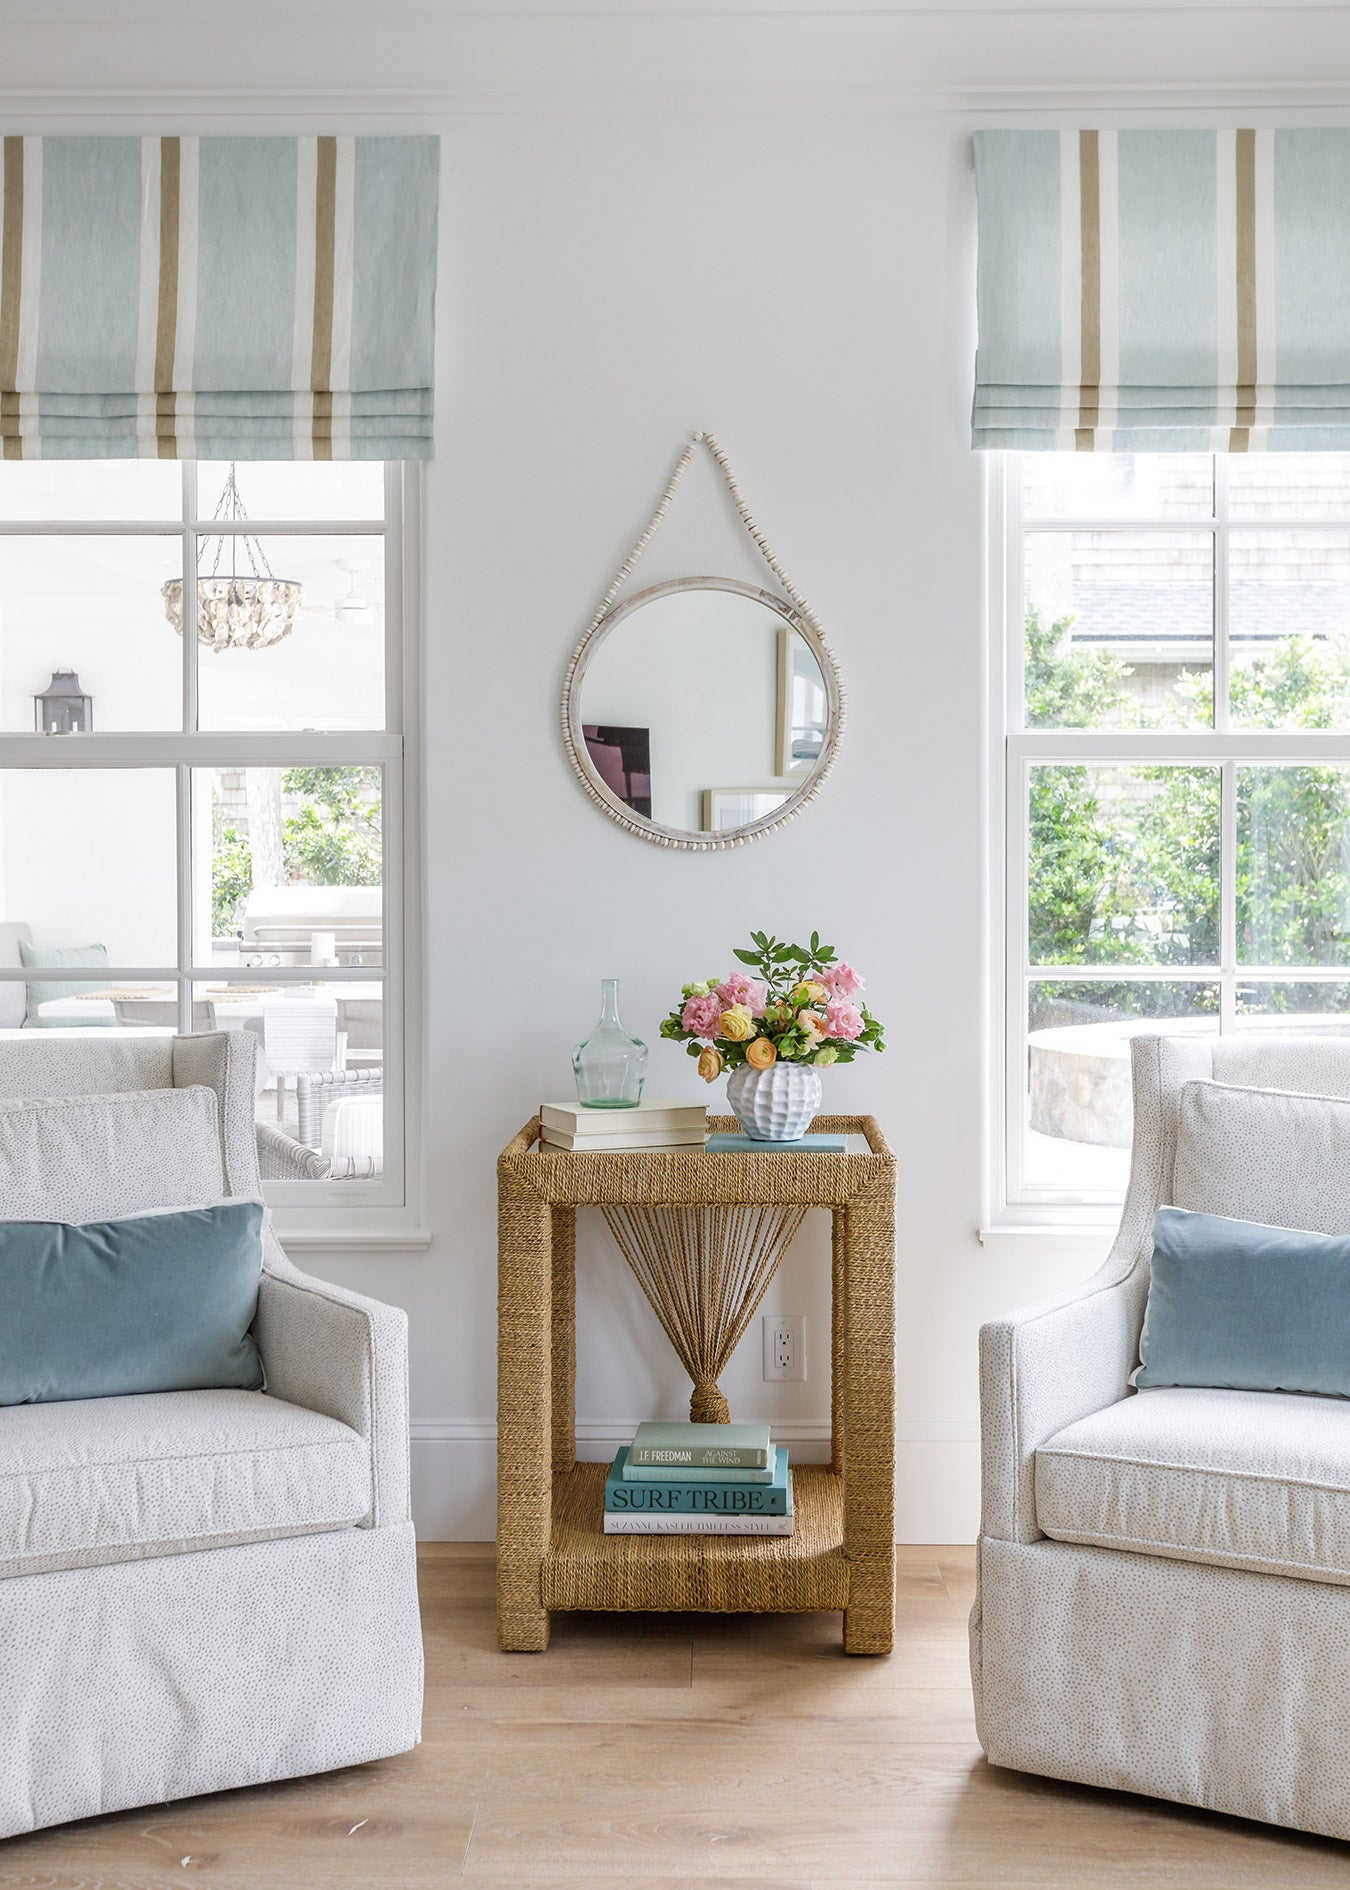 White chairs by windows designed by Nesting Place Interiors